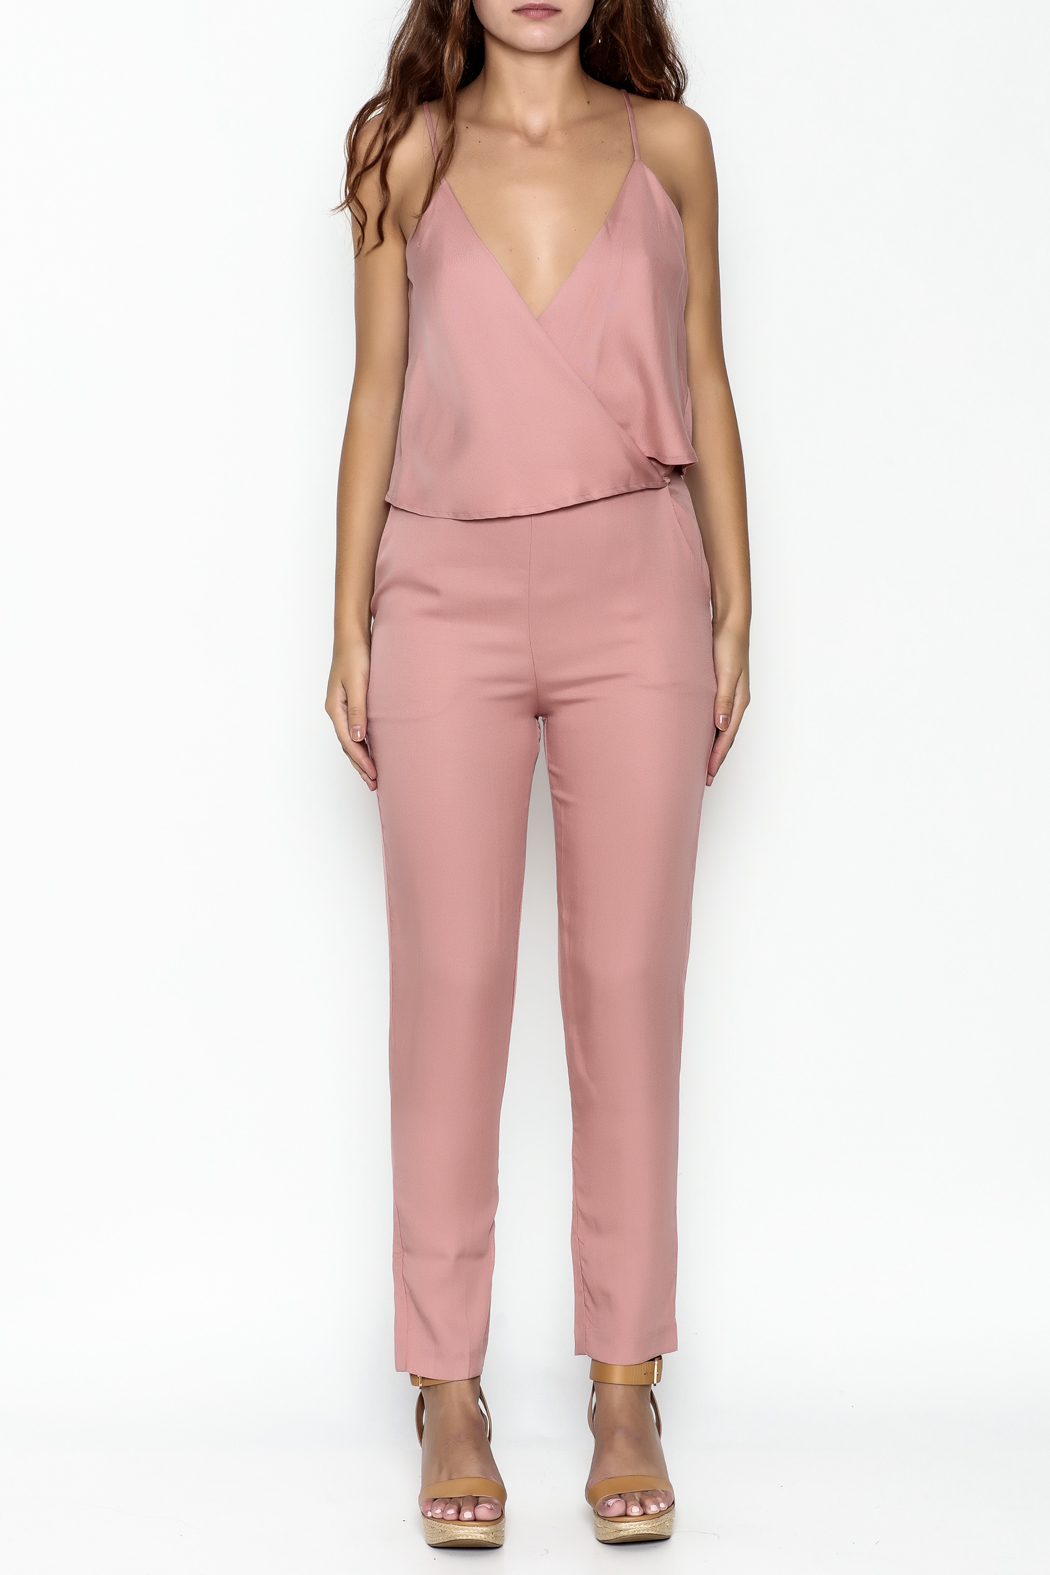 MOMNI BOUTIQUE Chic Pink Jumpsuit - Front Full Image